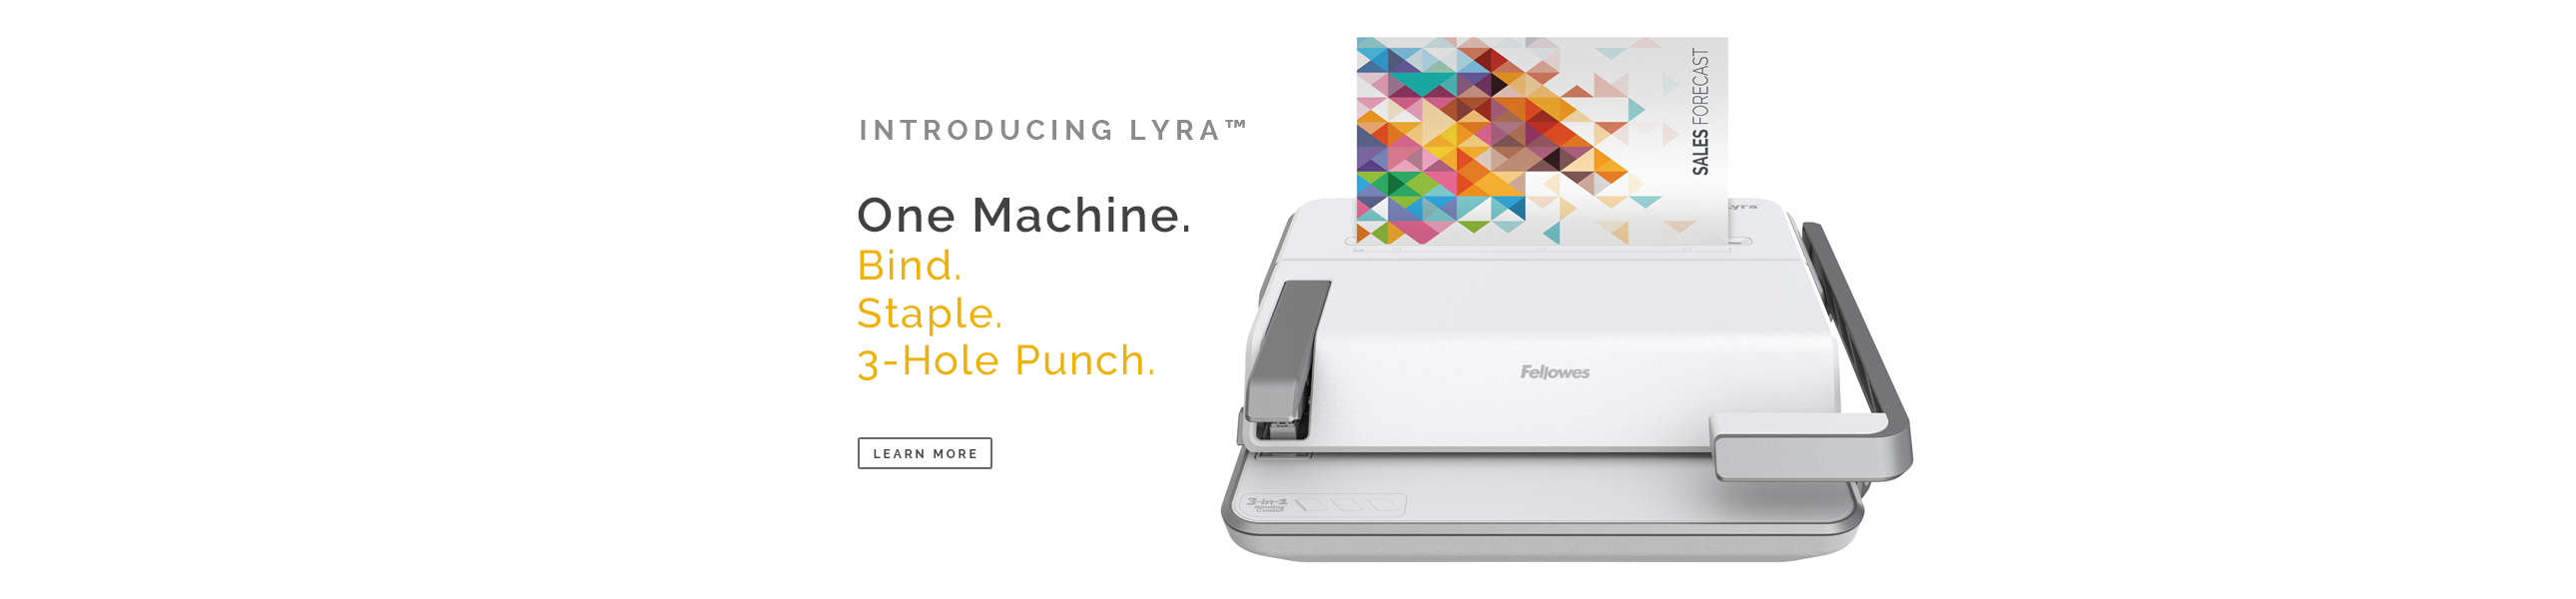 Introducing Fellowes Lyra Binging Machine - 3 in 1 Binding System. Bind - Staple - 3-Hole Punch